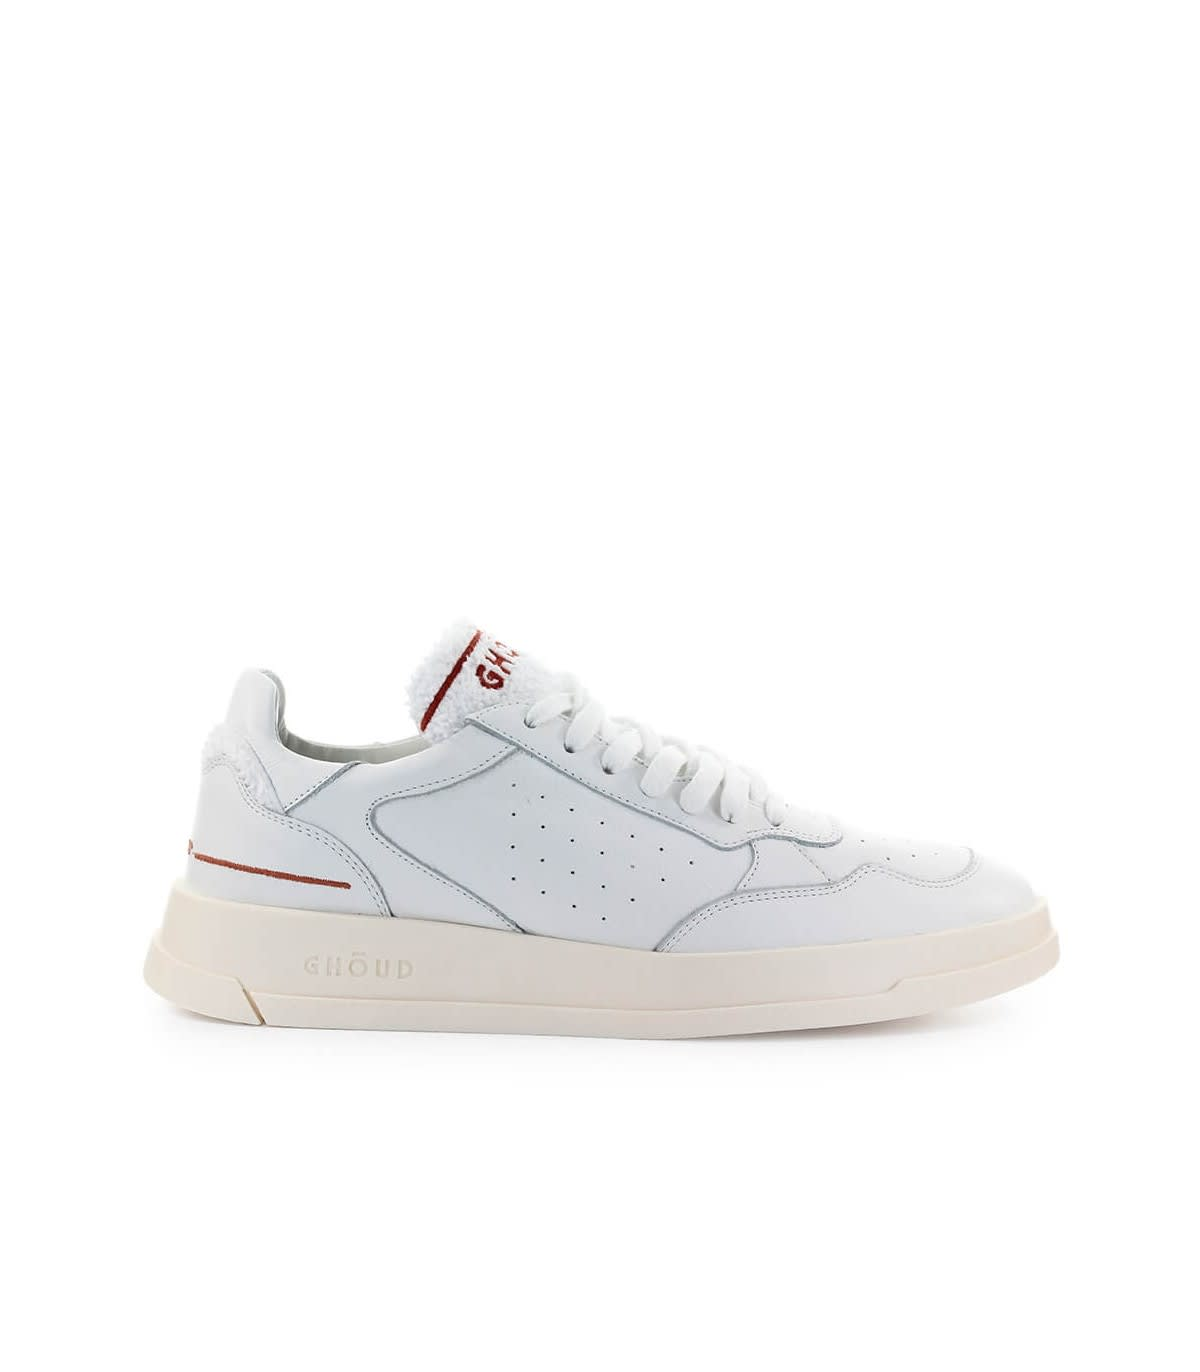 Ghoud GHOUD WHITE LEATHER TERRY SNEAKER